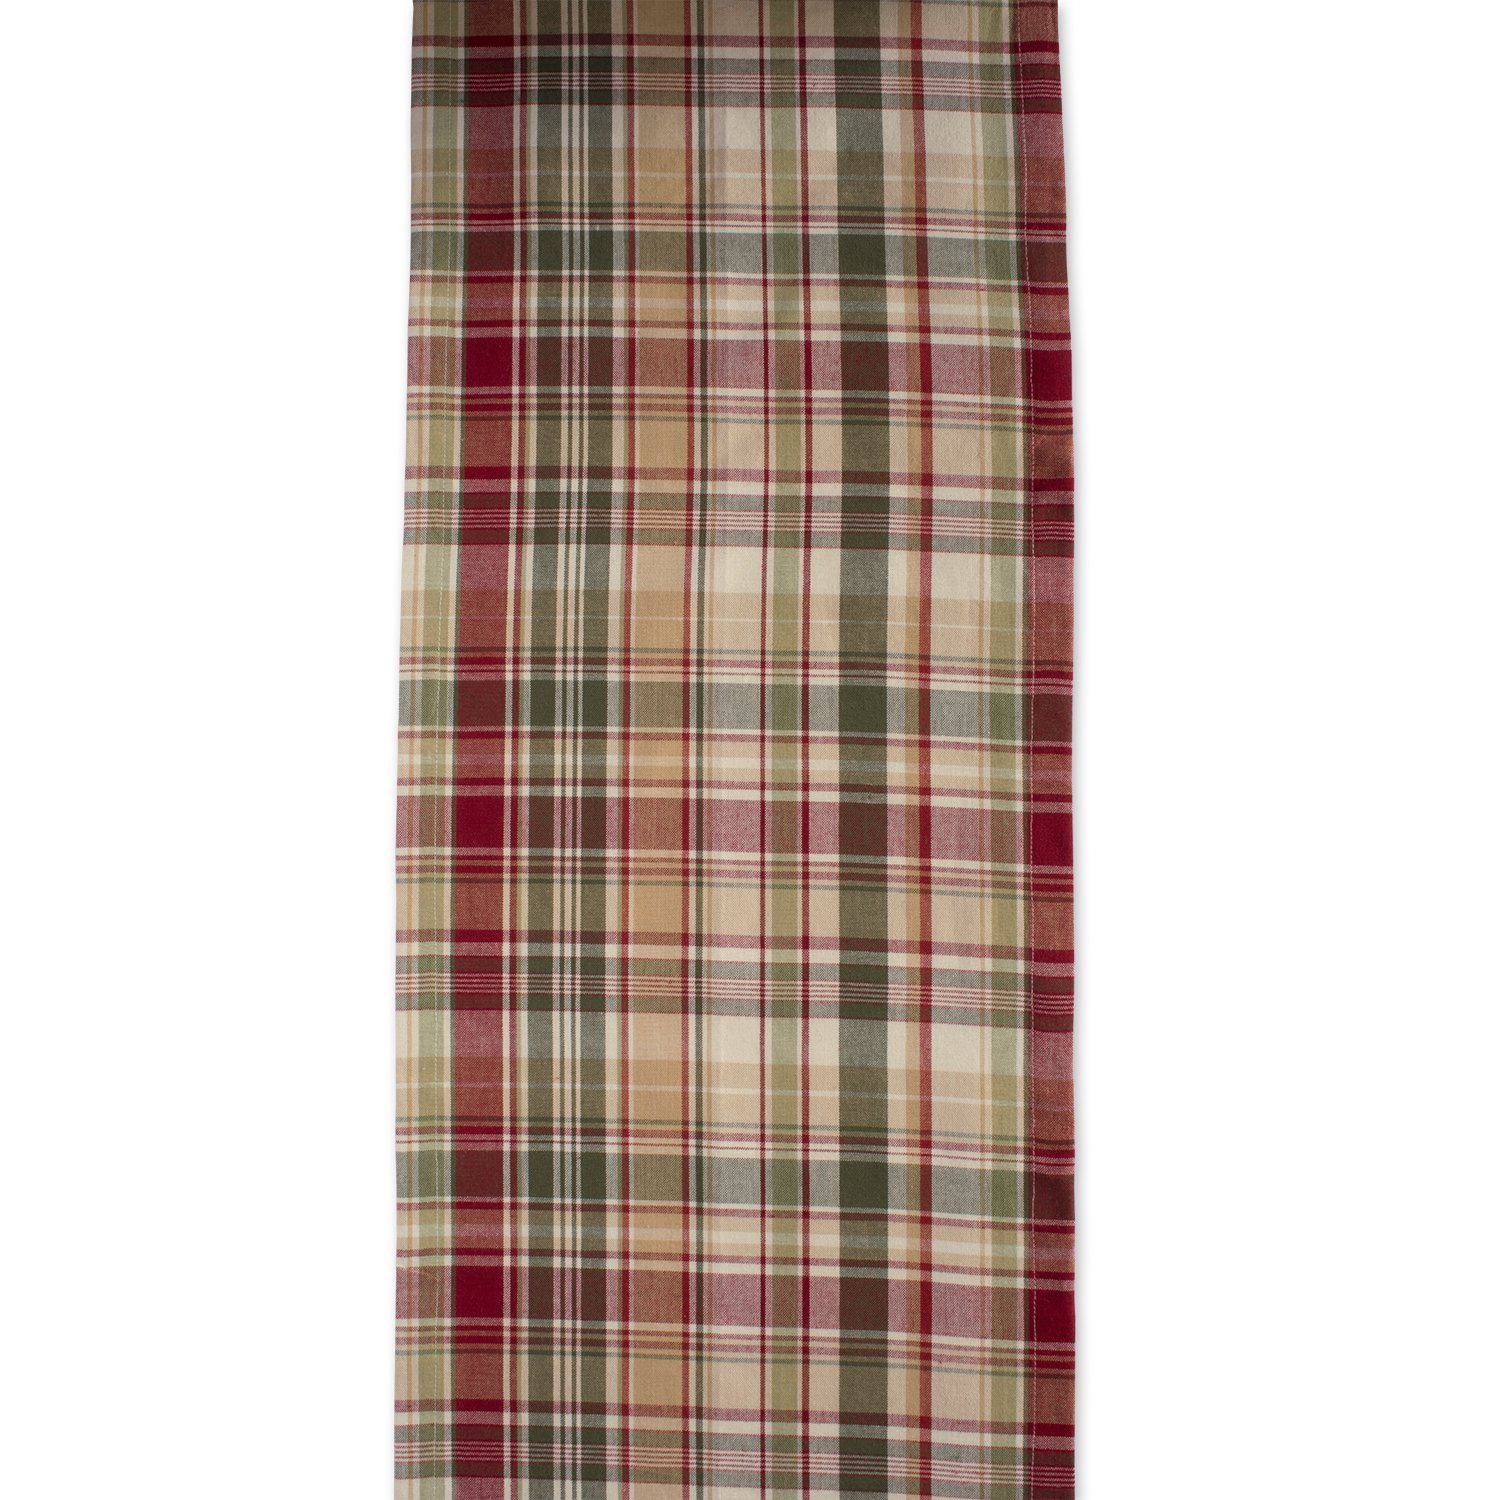 Cabin Plaid 100% Cotton Table Runner (14x108'') by DII (Image #3)